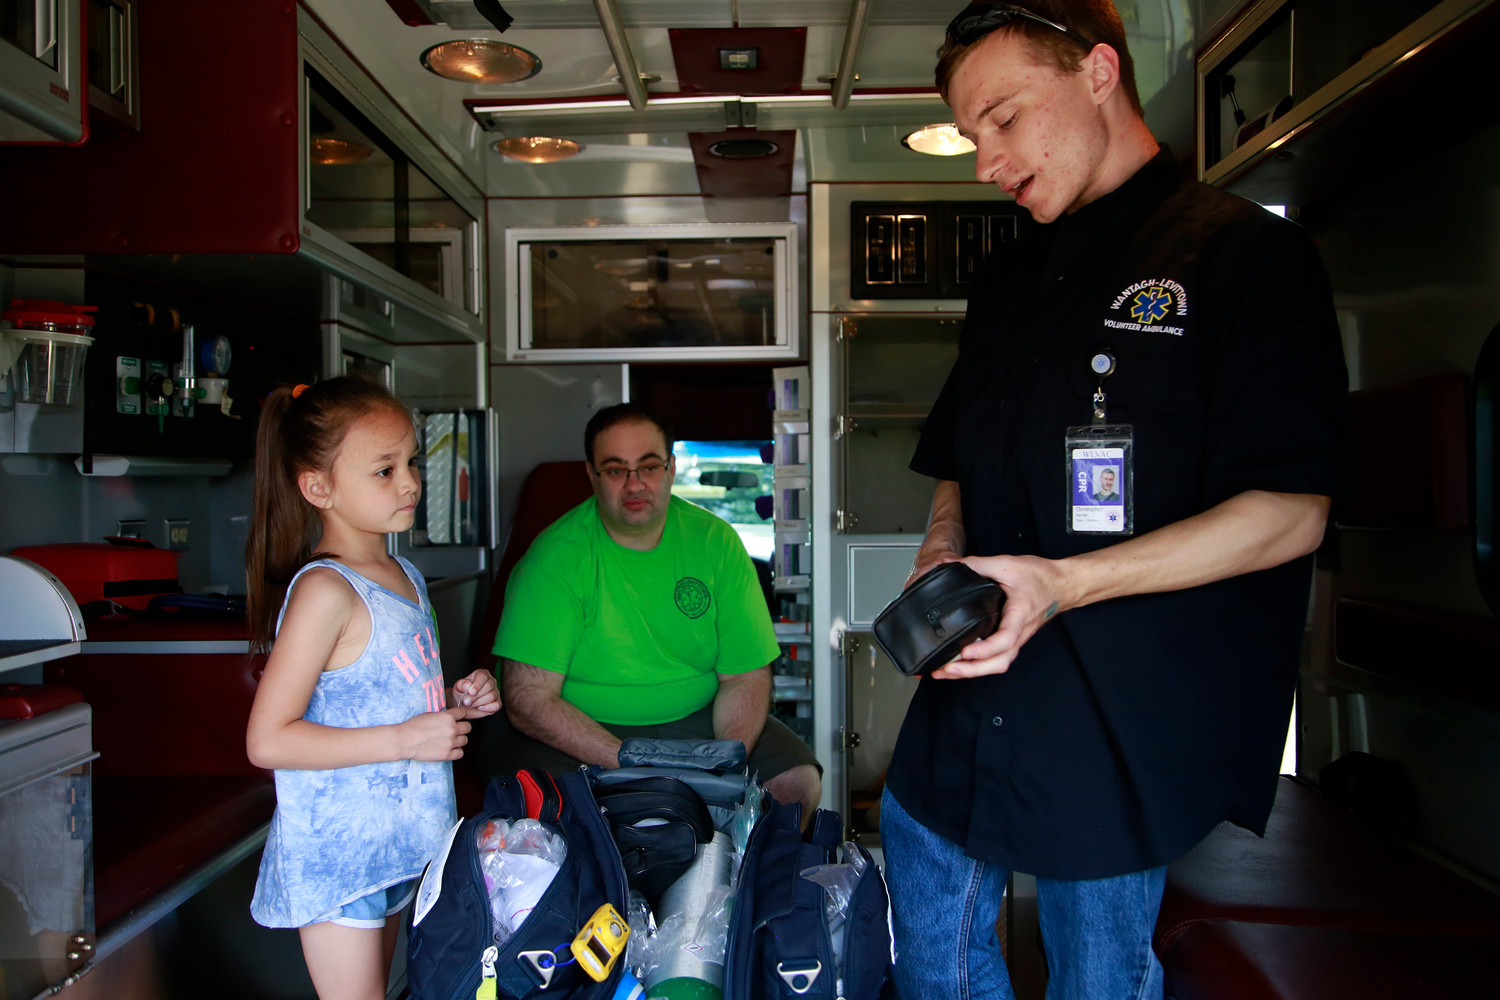 Chris Harran and Michael Pietroburgo give 6-year Lauren Gullotti a tour of an ambulance.